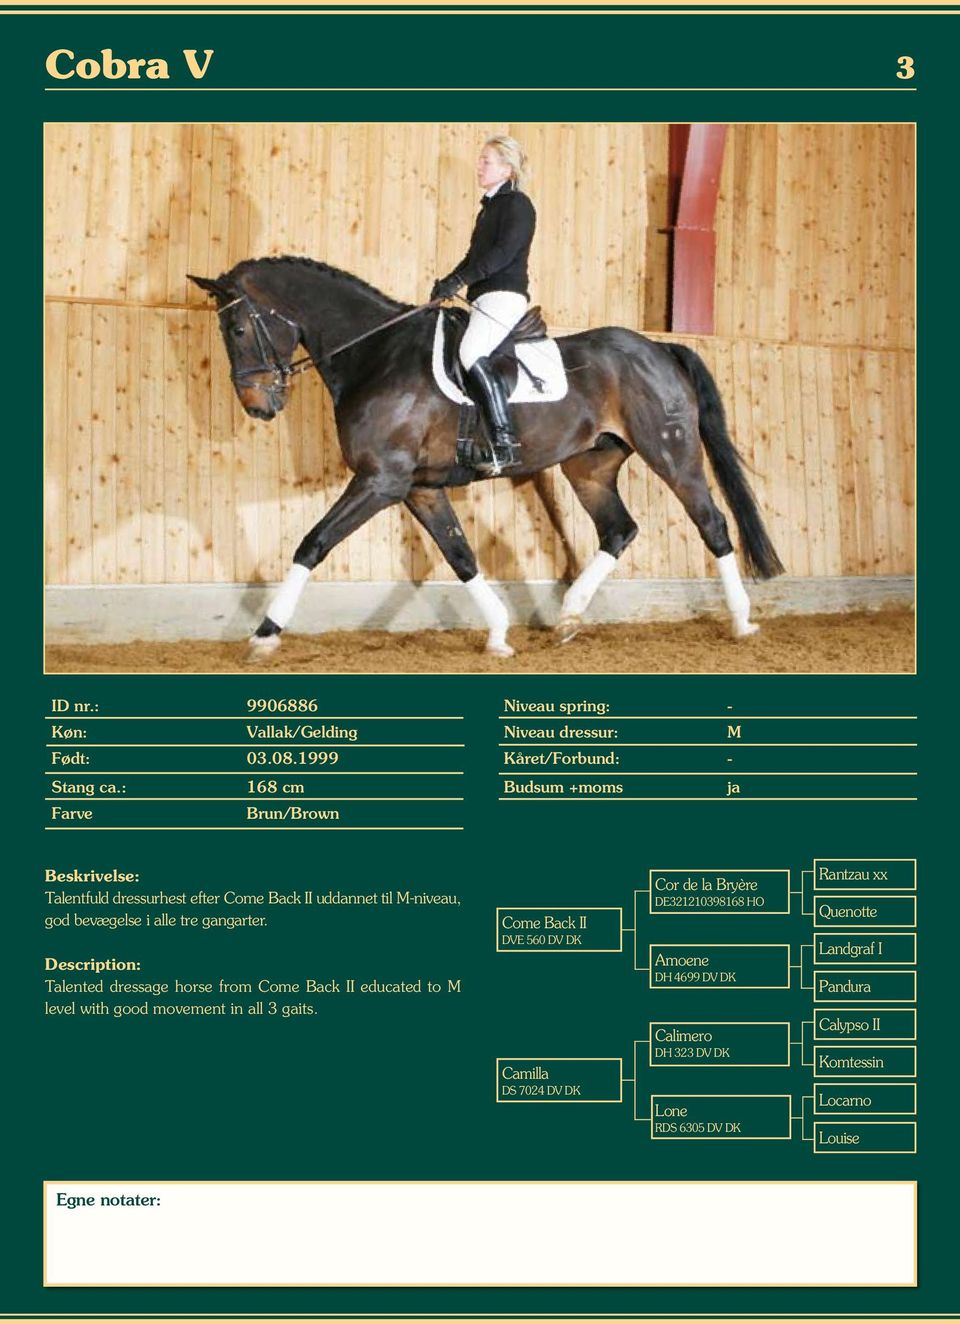 Talented dressage horse from Come Back II educated to M level with good movement in all 3 gaits.